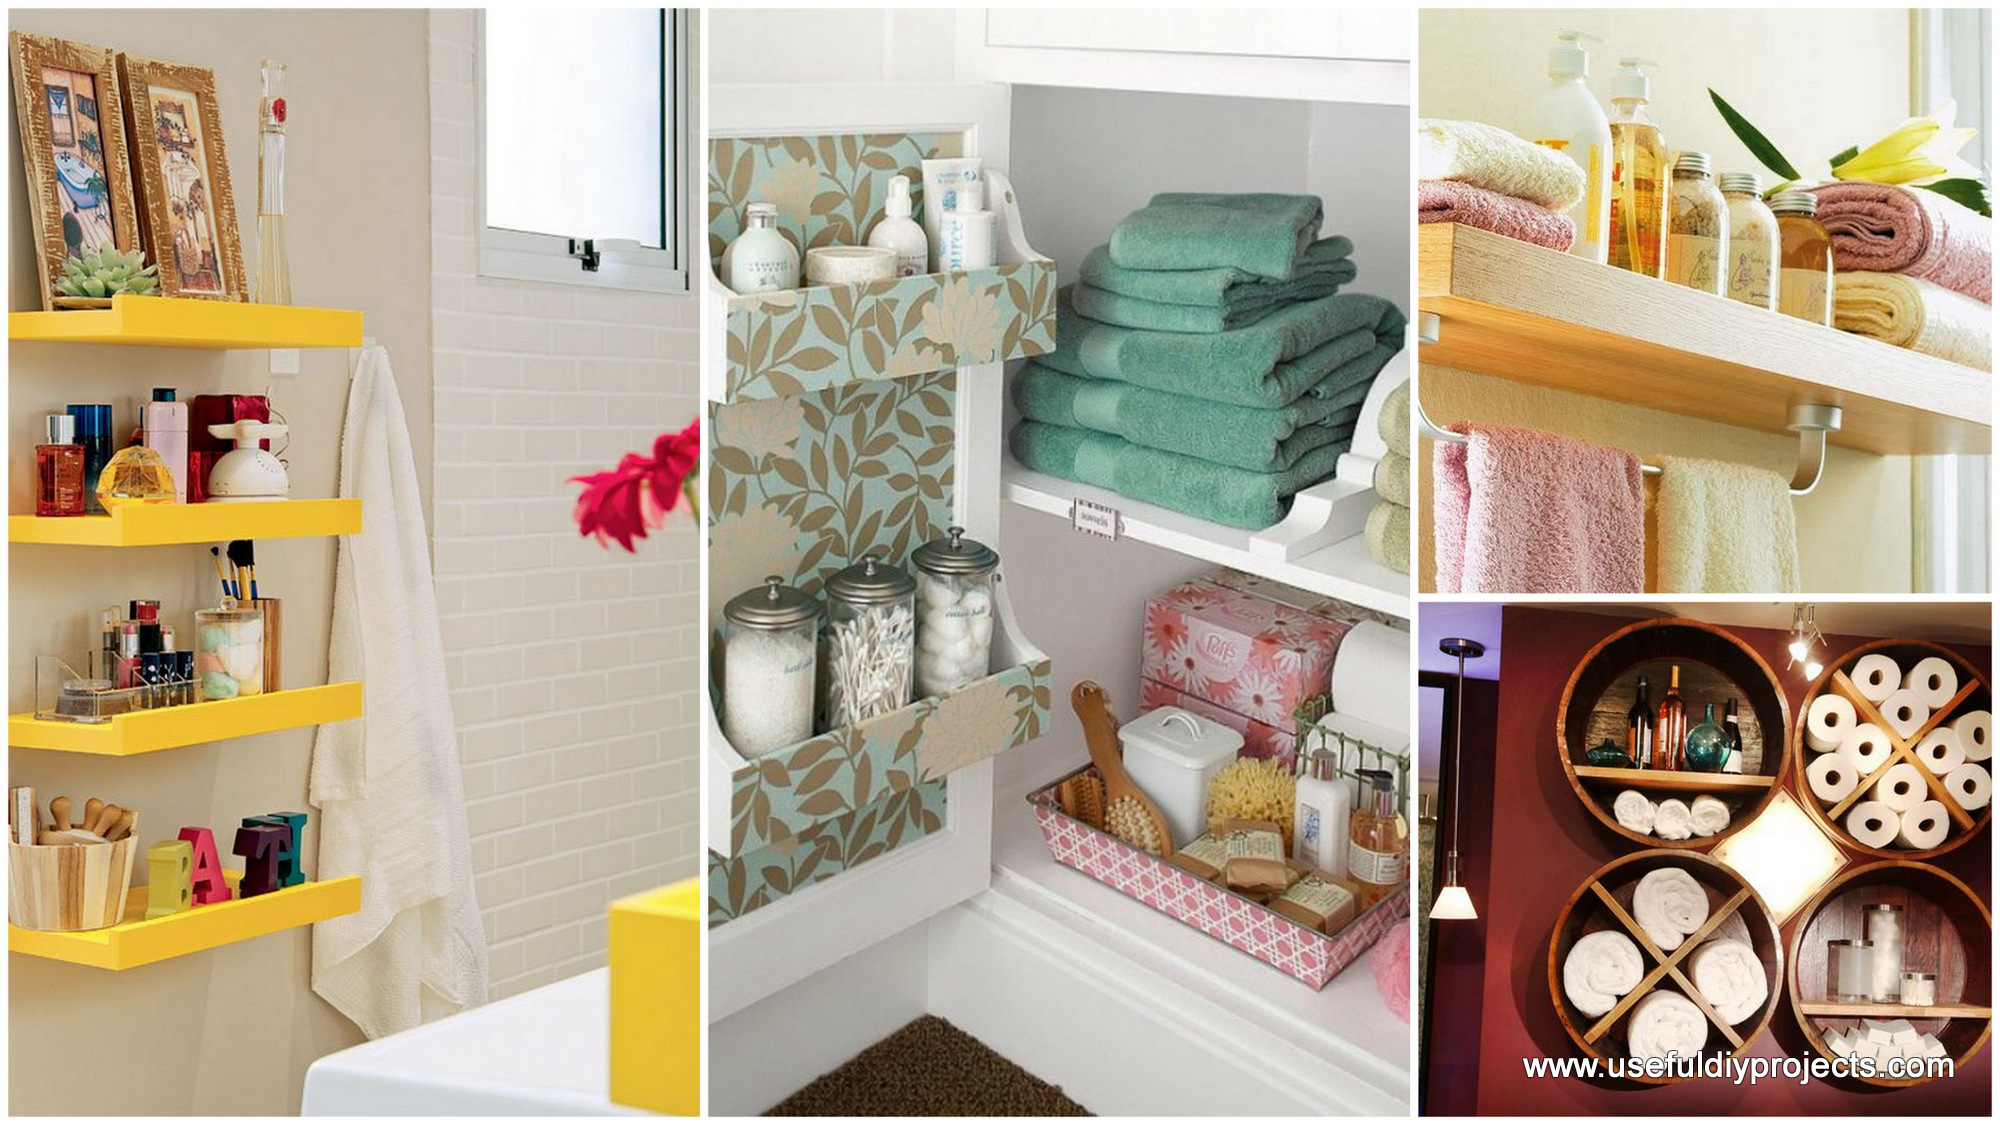 Diy bathroom storage ideas for Bathroom designs diy